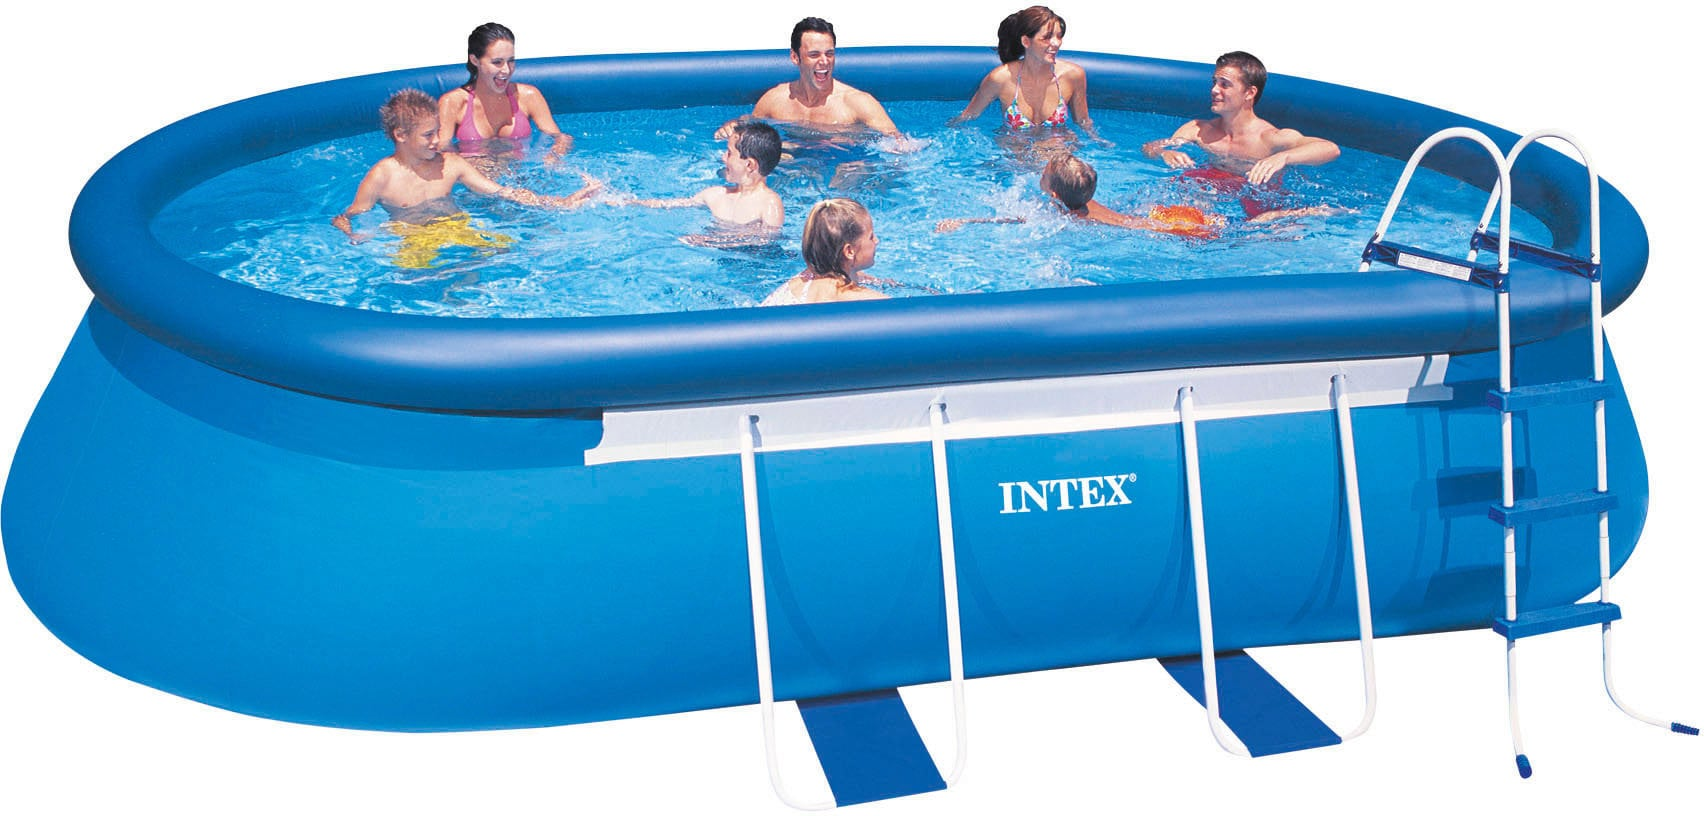 Solarplane Für Pool Oval Intex Frame Pool Oval 549 X 305 X 107 Cm Allespool